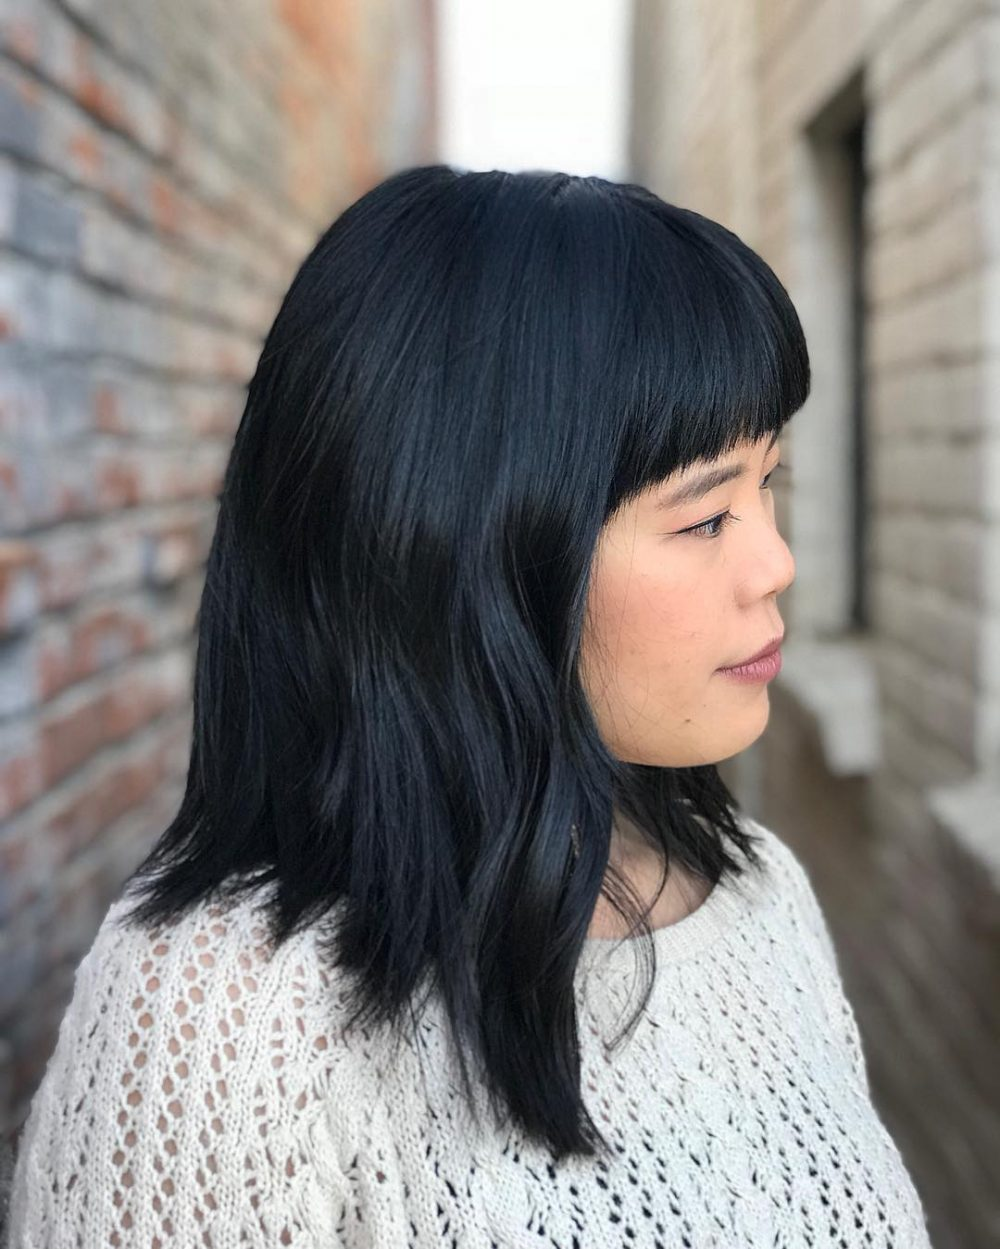 53 Medium Hairstyles With Bangs: Our Latest Faves!